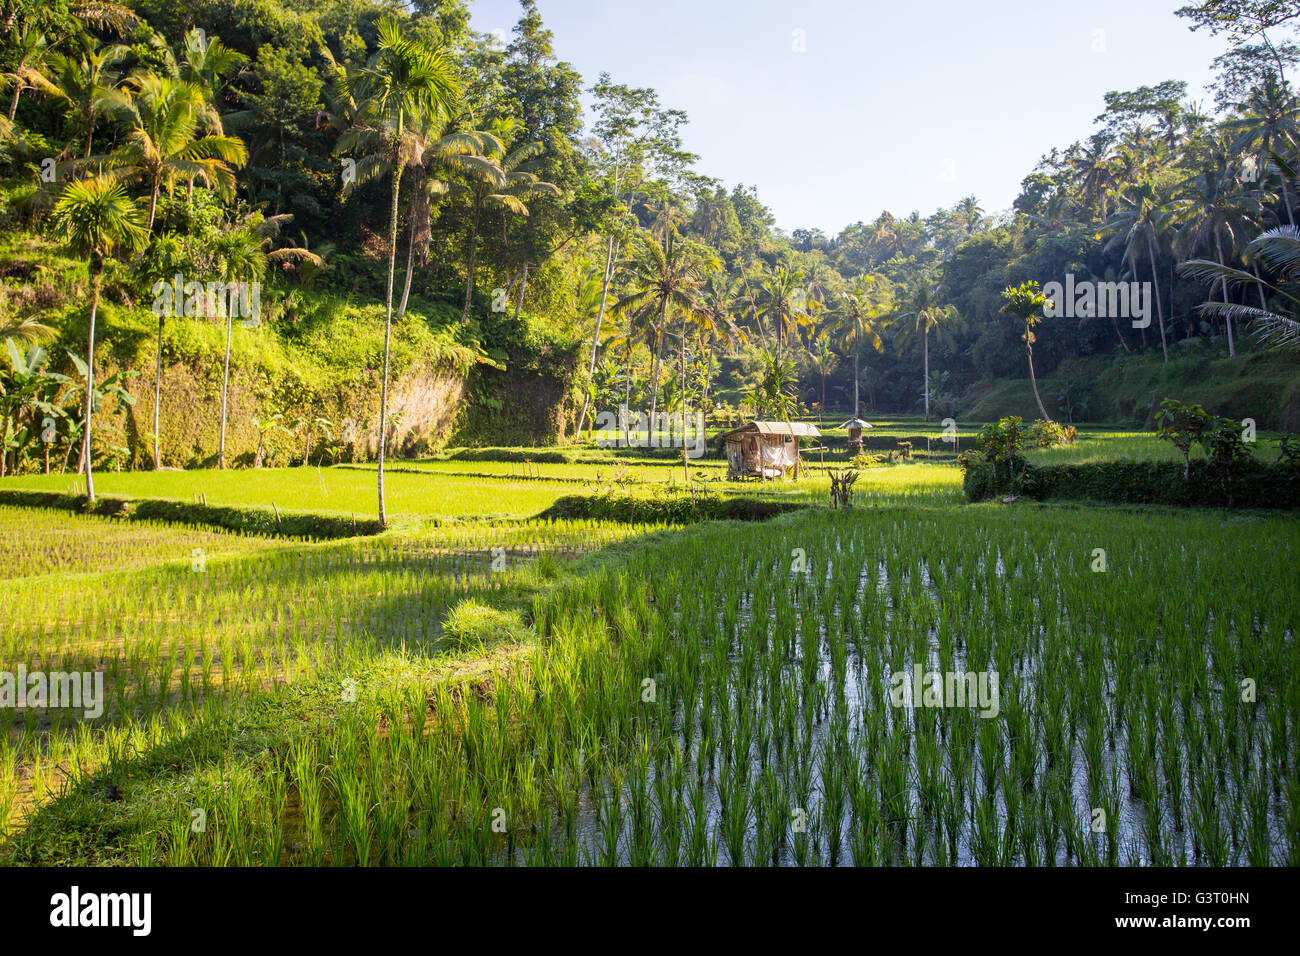 Crops of rice fields on a hot sunny afternoon near Ubud, Bali, Indonesia Stock Photo